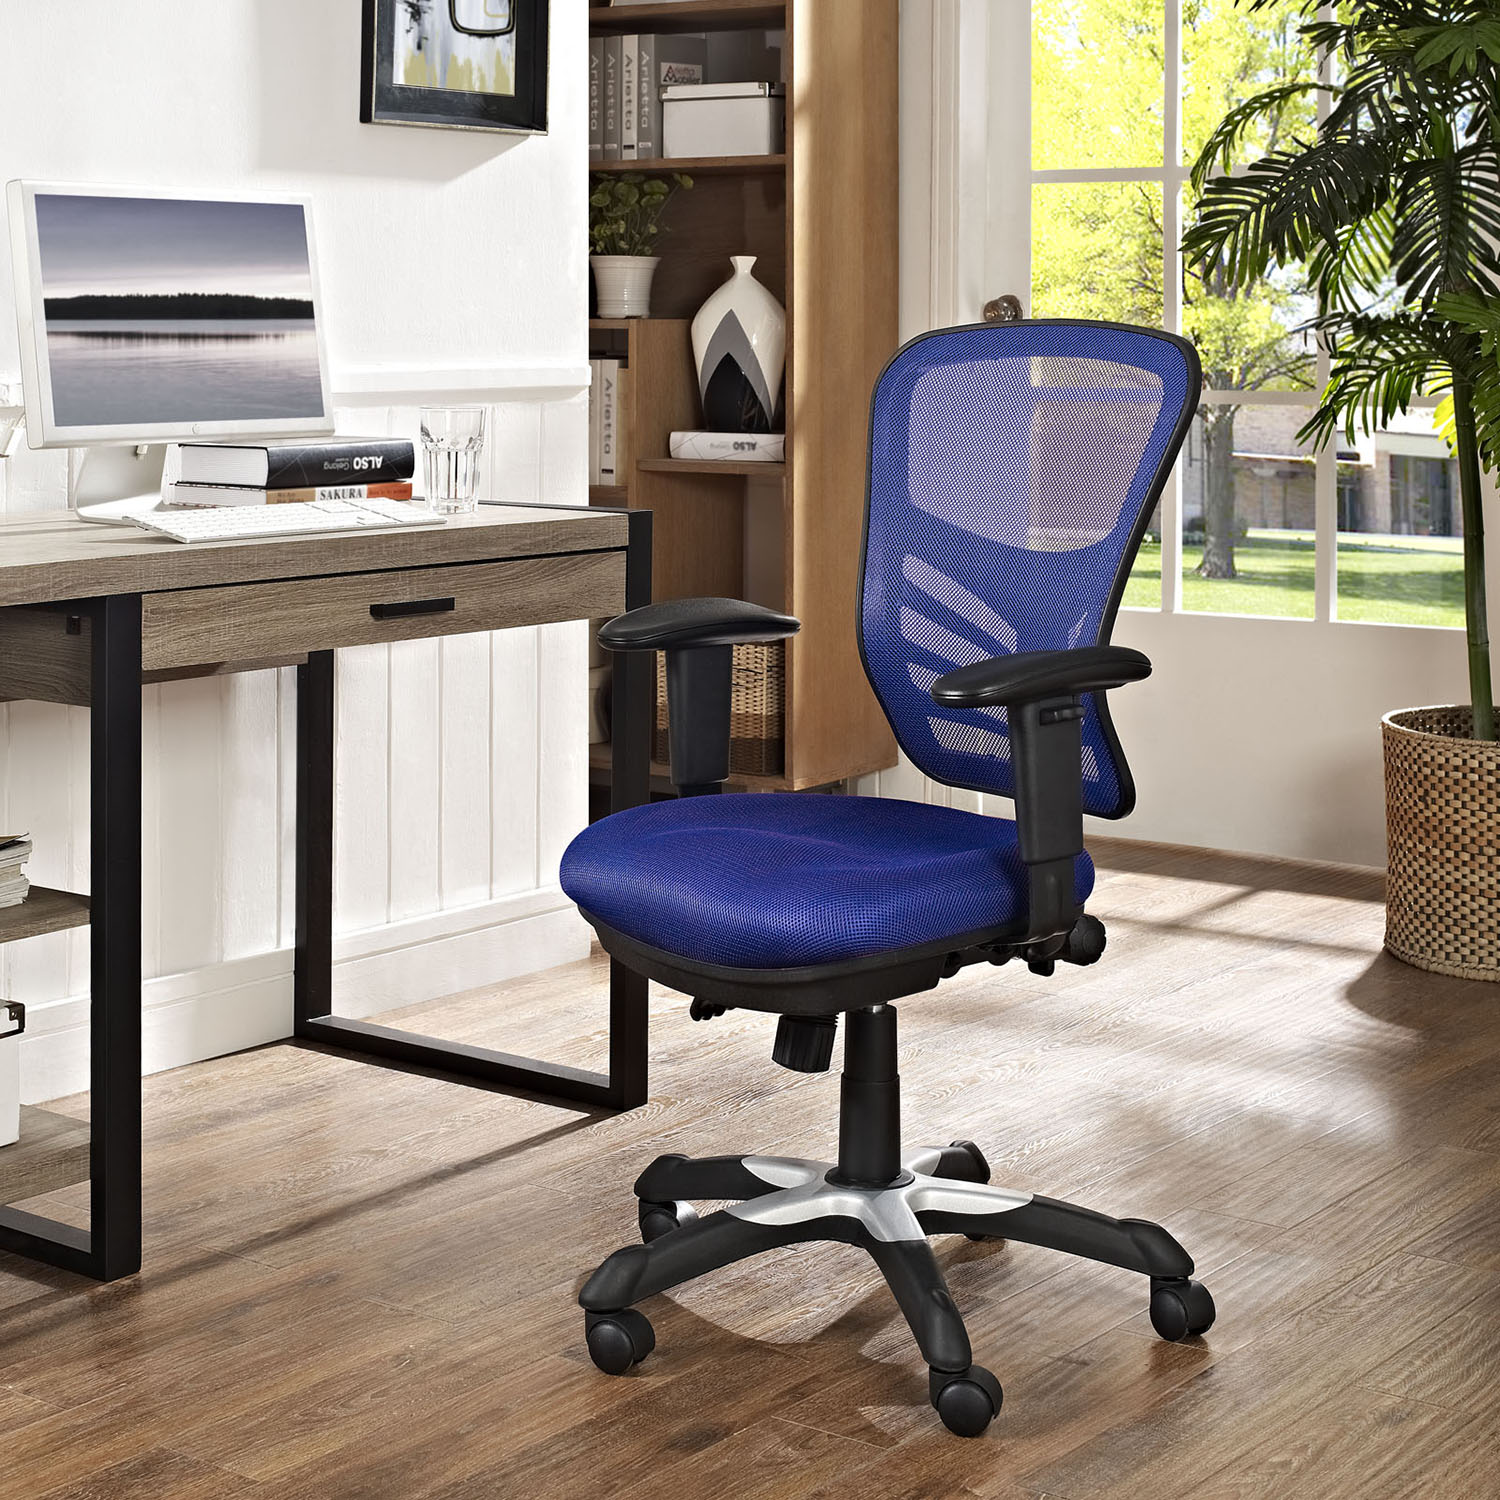 office chair adjustments small bedroom no arms articulate mesh height adjustment tilt